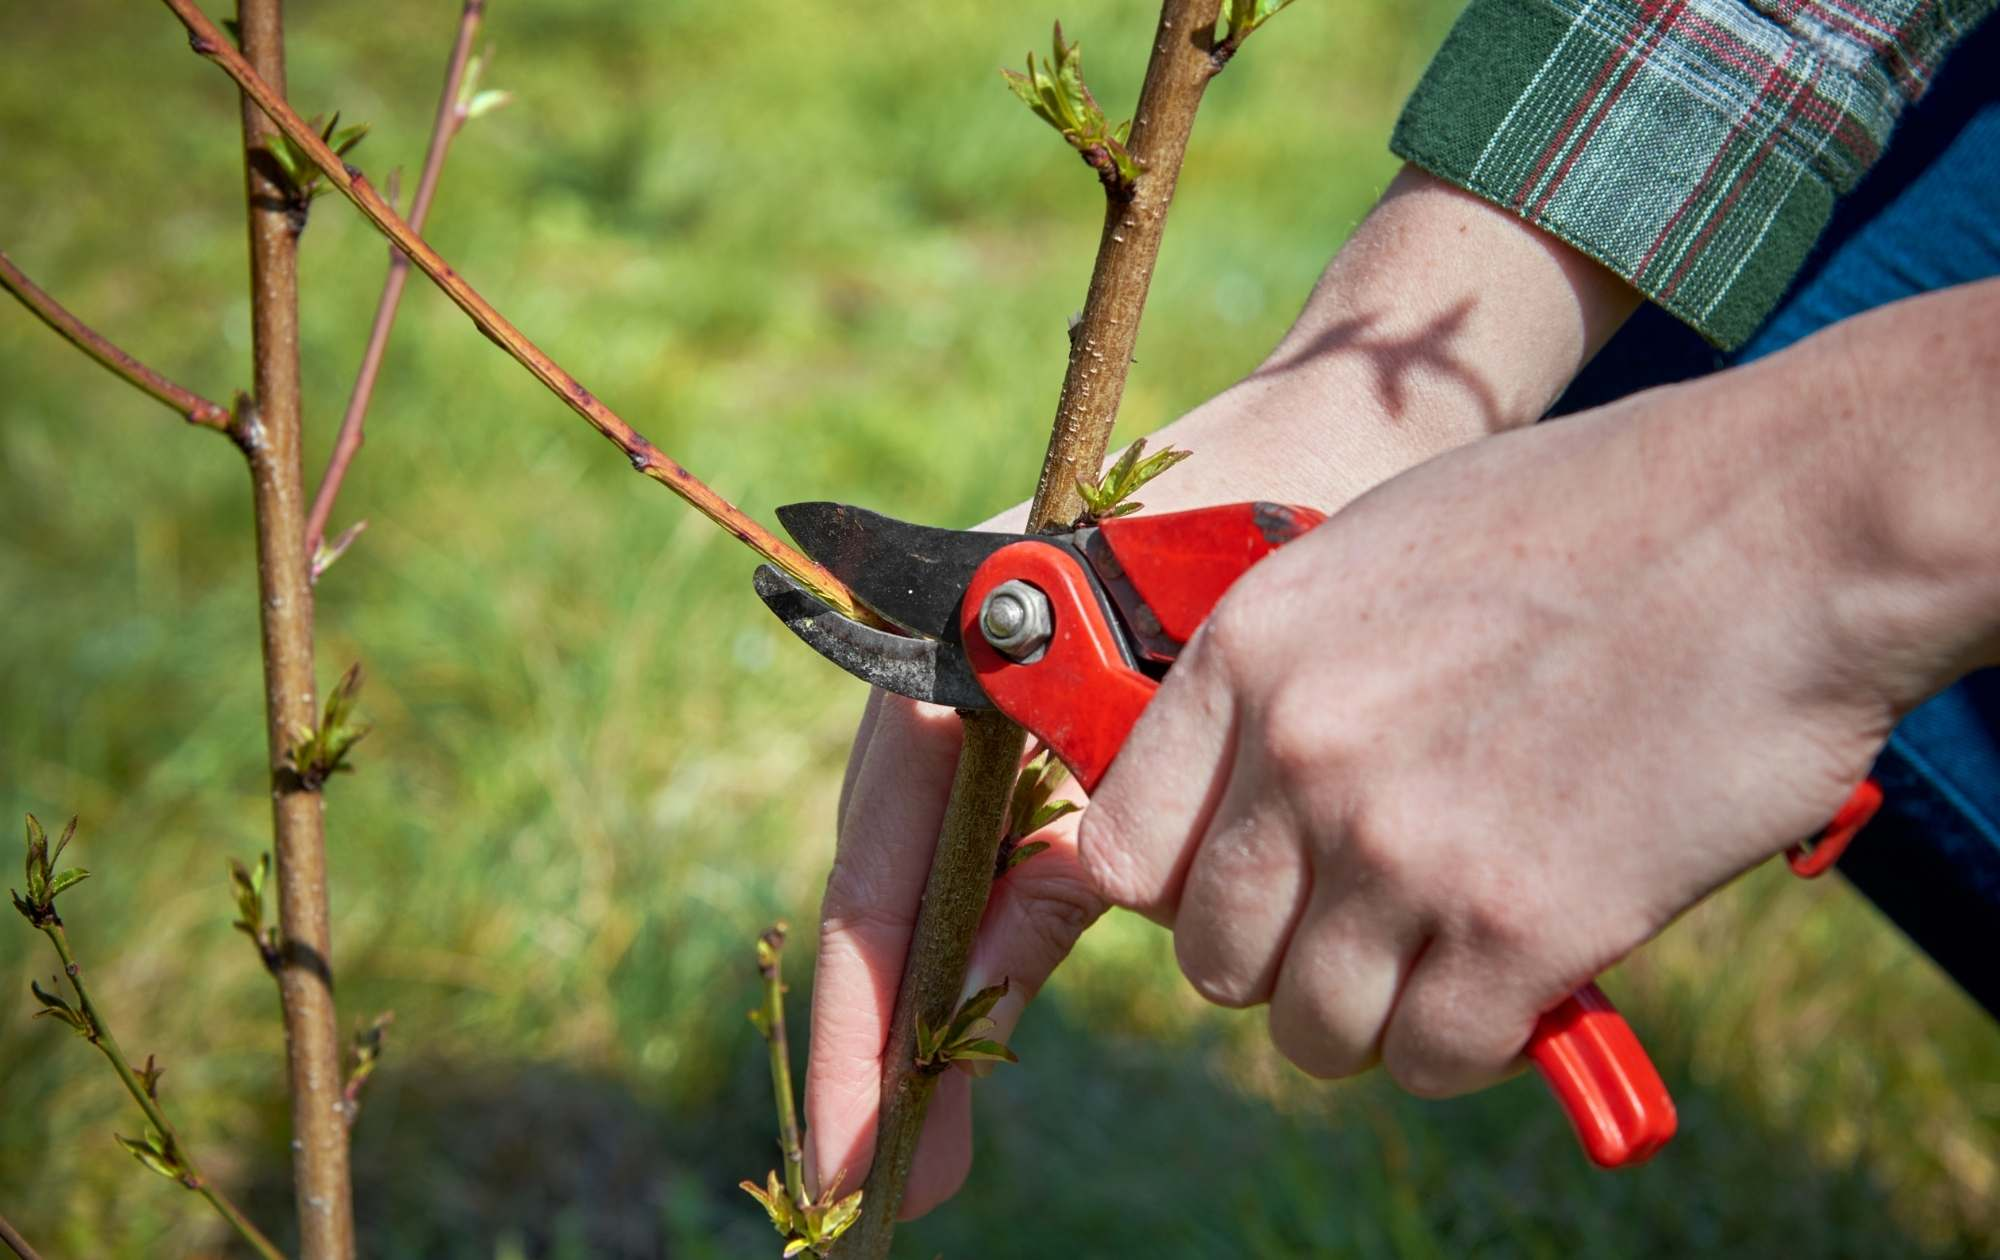 Person pruning blueberry bushes